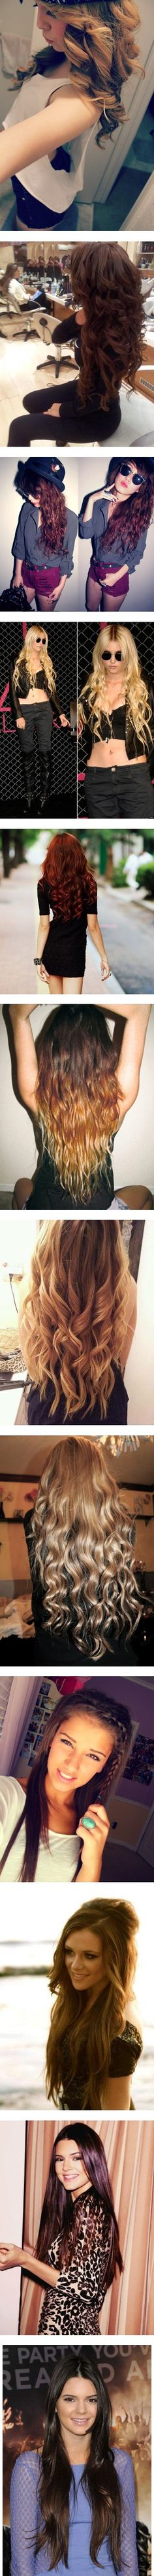 """Elaine's Hair Inspiration ♡"" by elaine-elizabethxo ❤ liked on Polyvore"